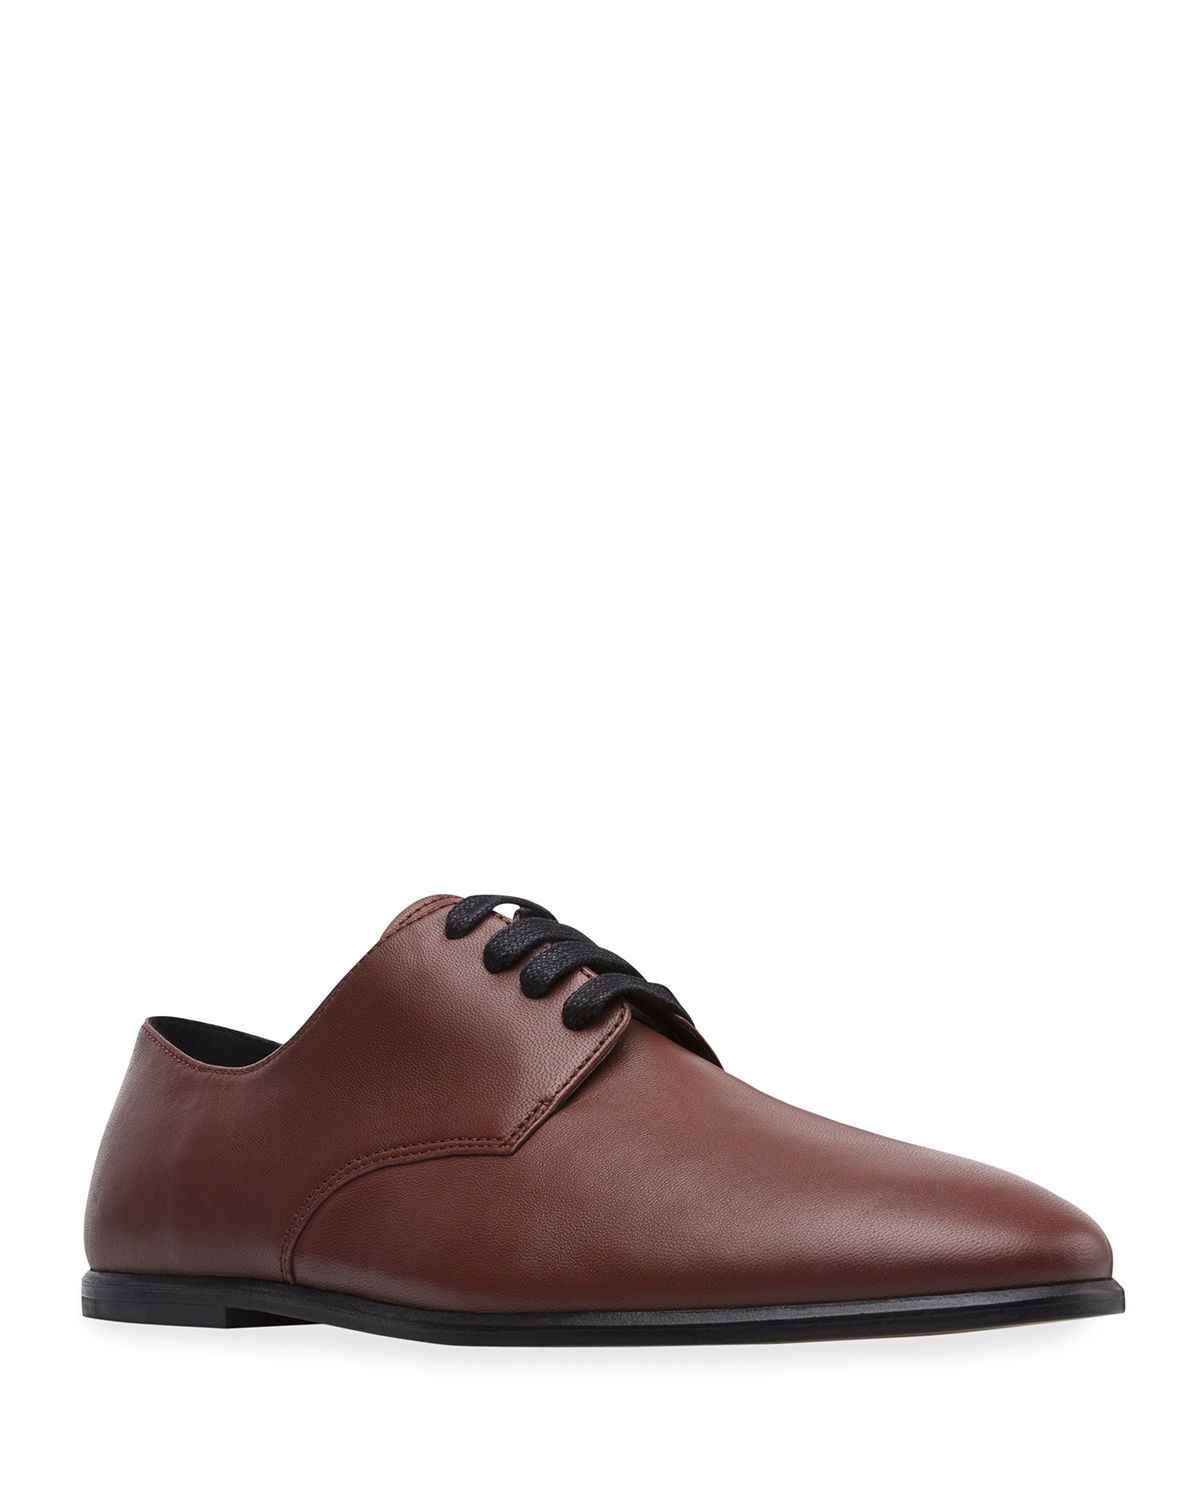 Men's Twins Leather Lace-Up Oxfords